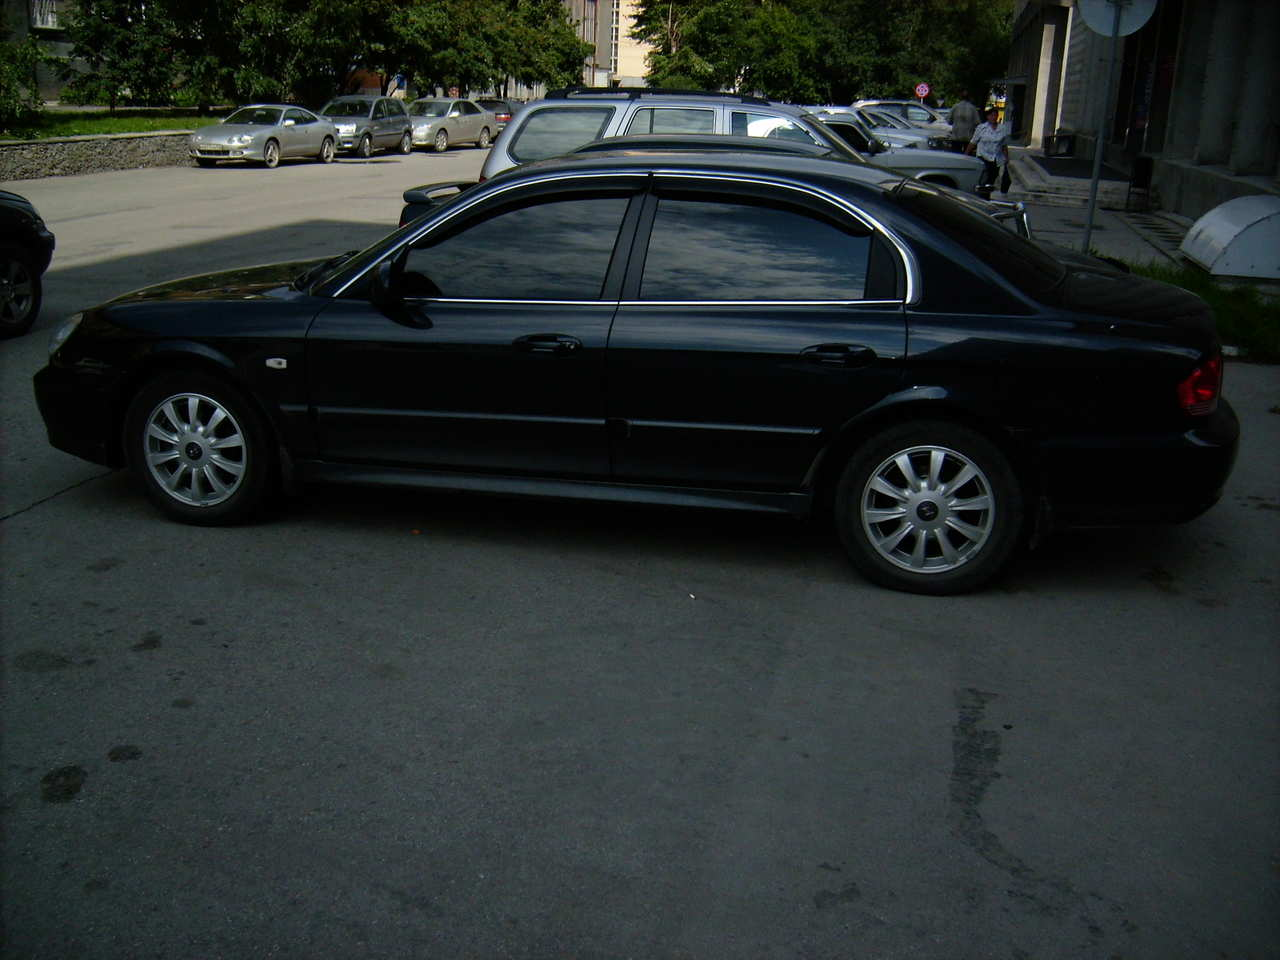 2005 hyundai sonata pictures 2000cc gasoline ff manual for sale. Black Bedroom Furniture Sets. Home Design Ideas